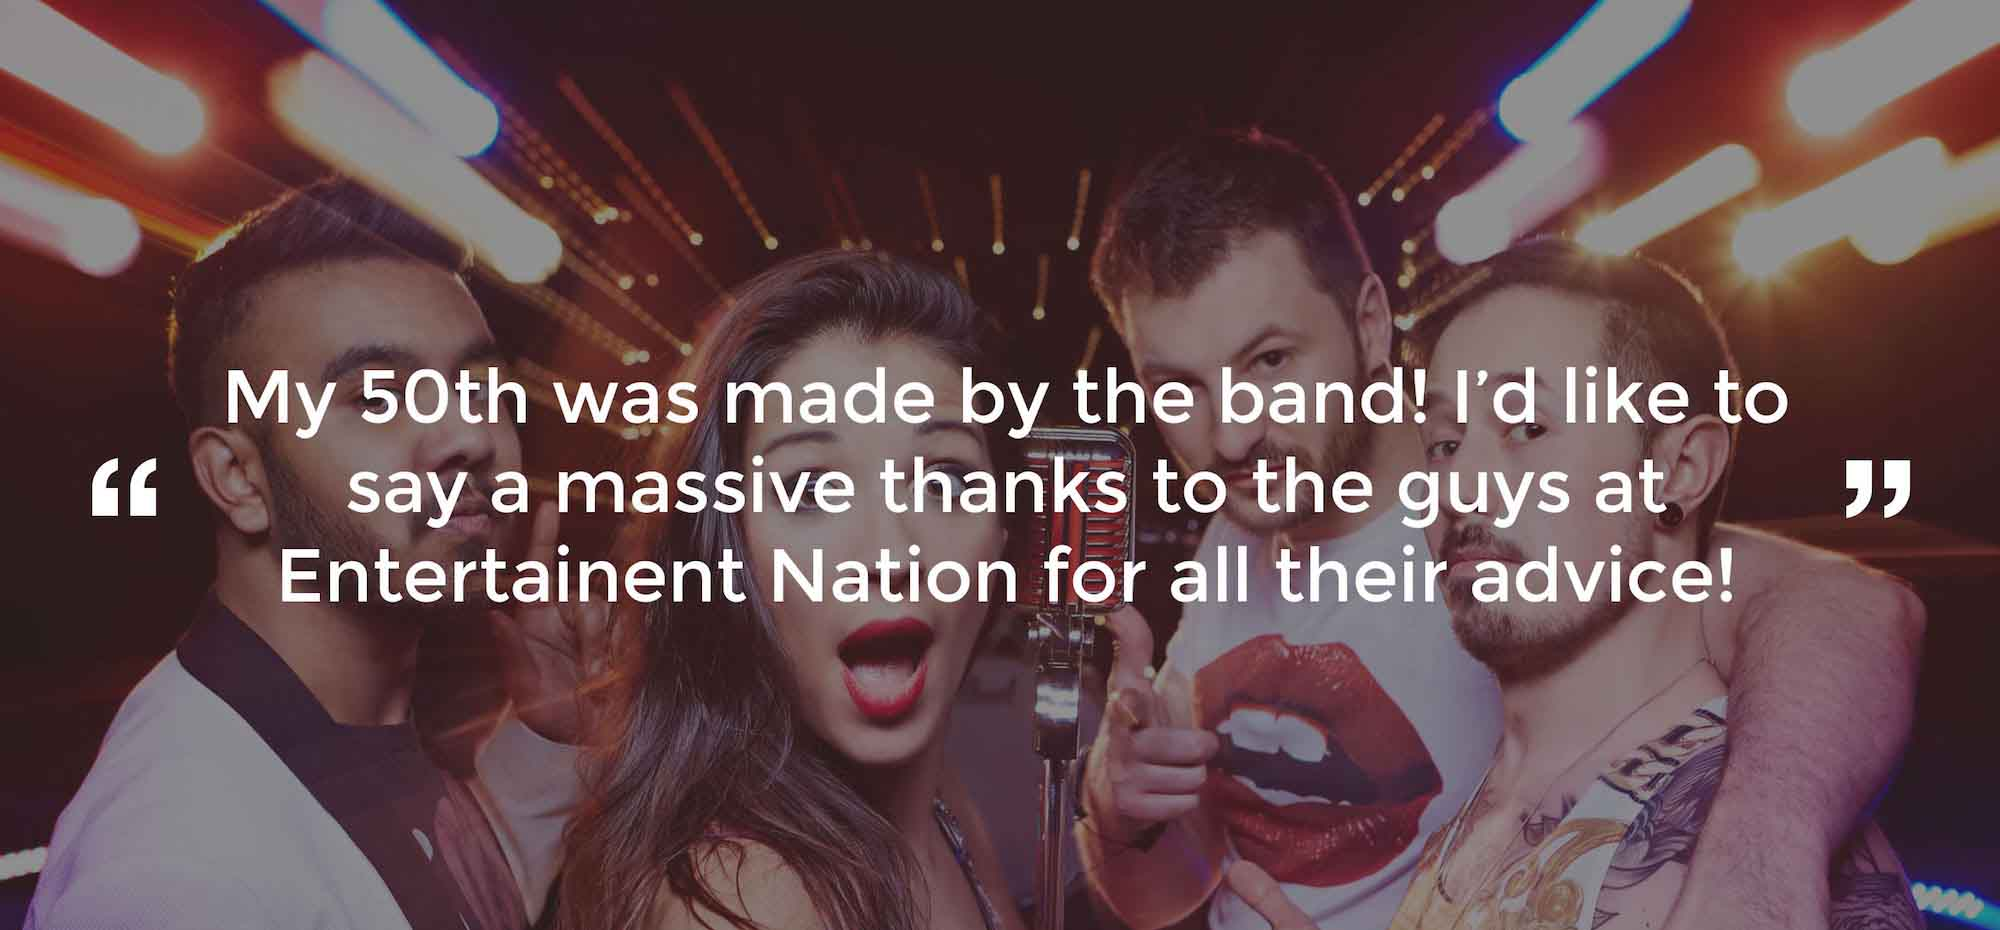 Client Review of a Party Band West Glamorgan